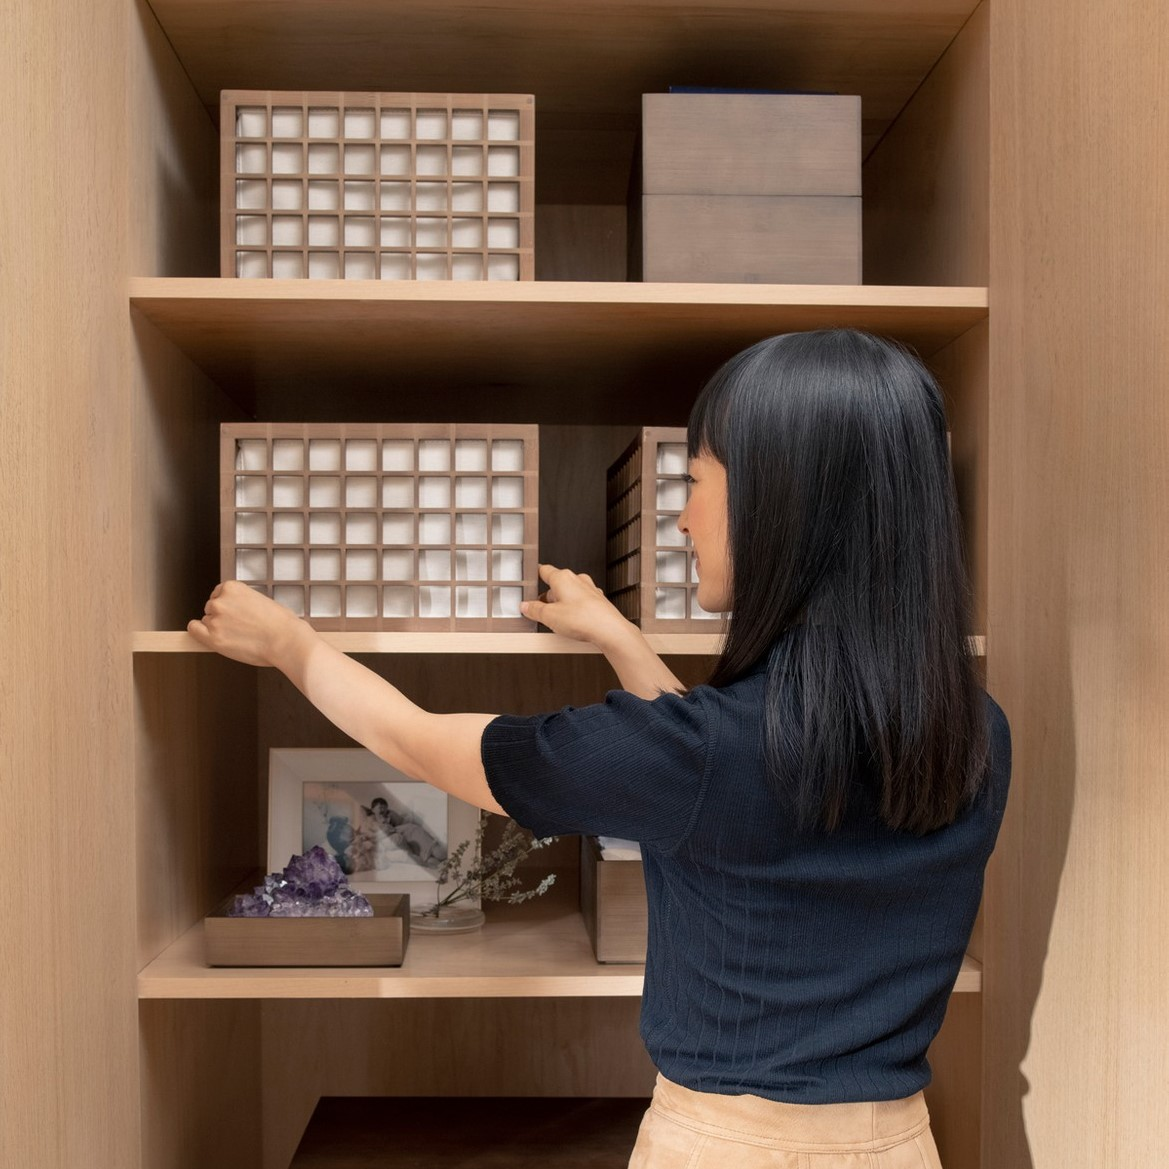 Northshore - Promo - The Container Store image